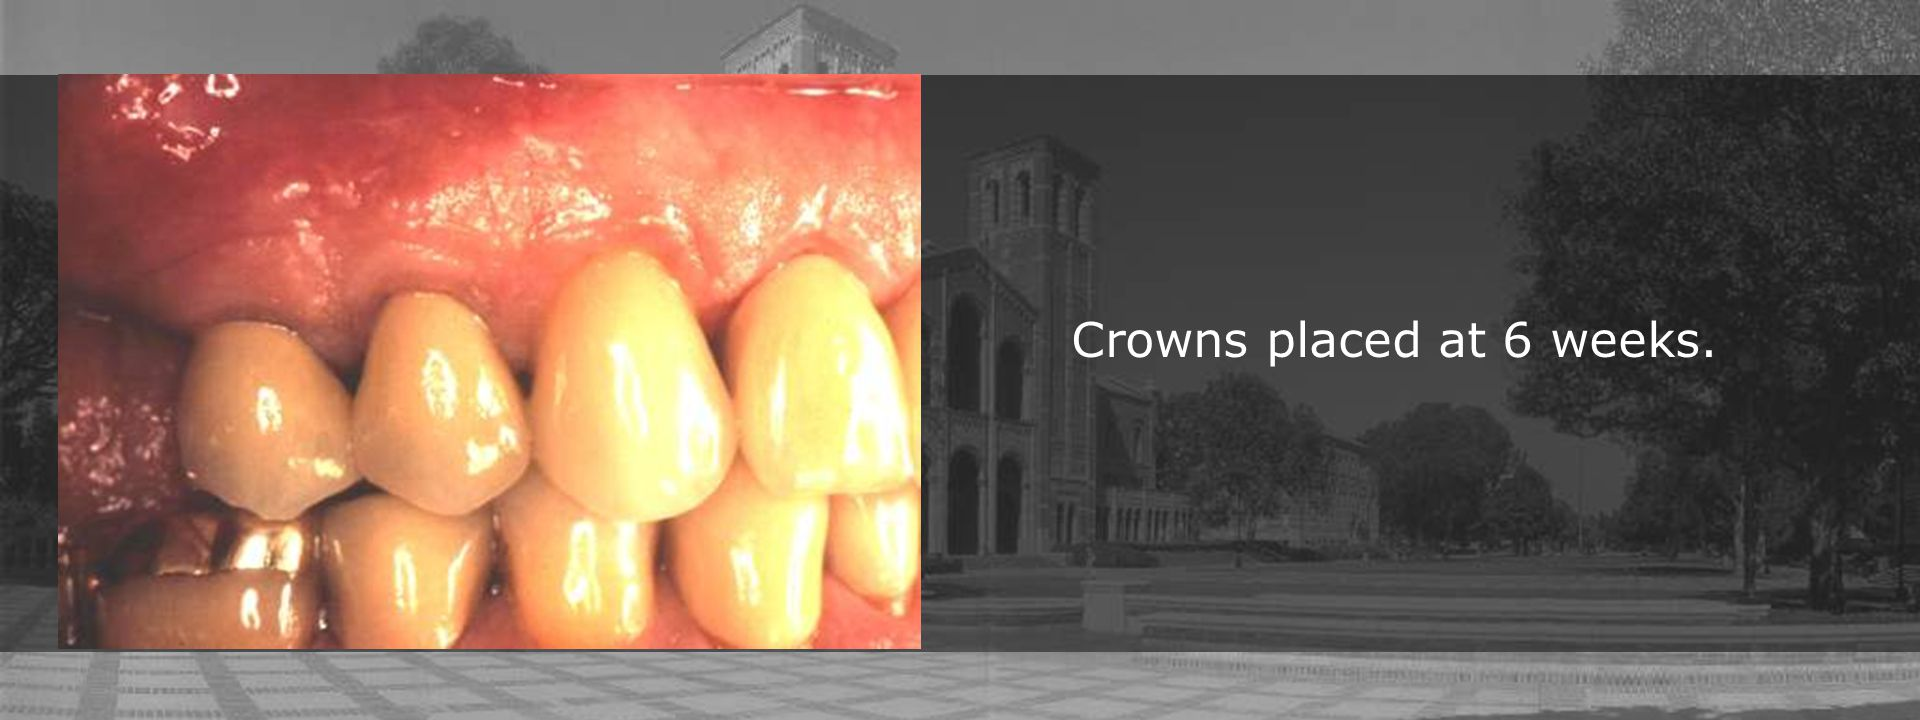 Crowns placed at 6 weeks.